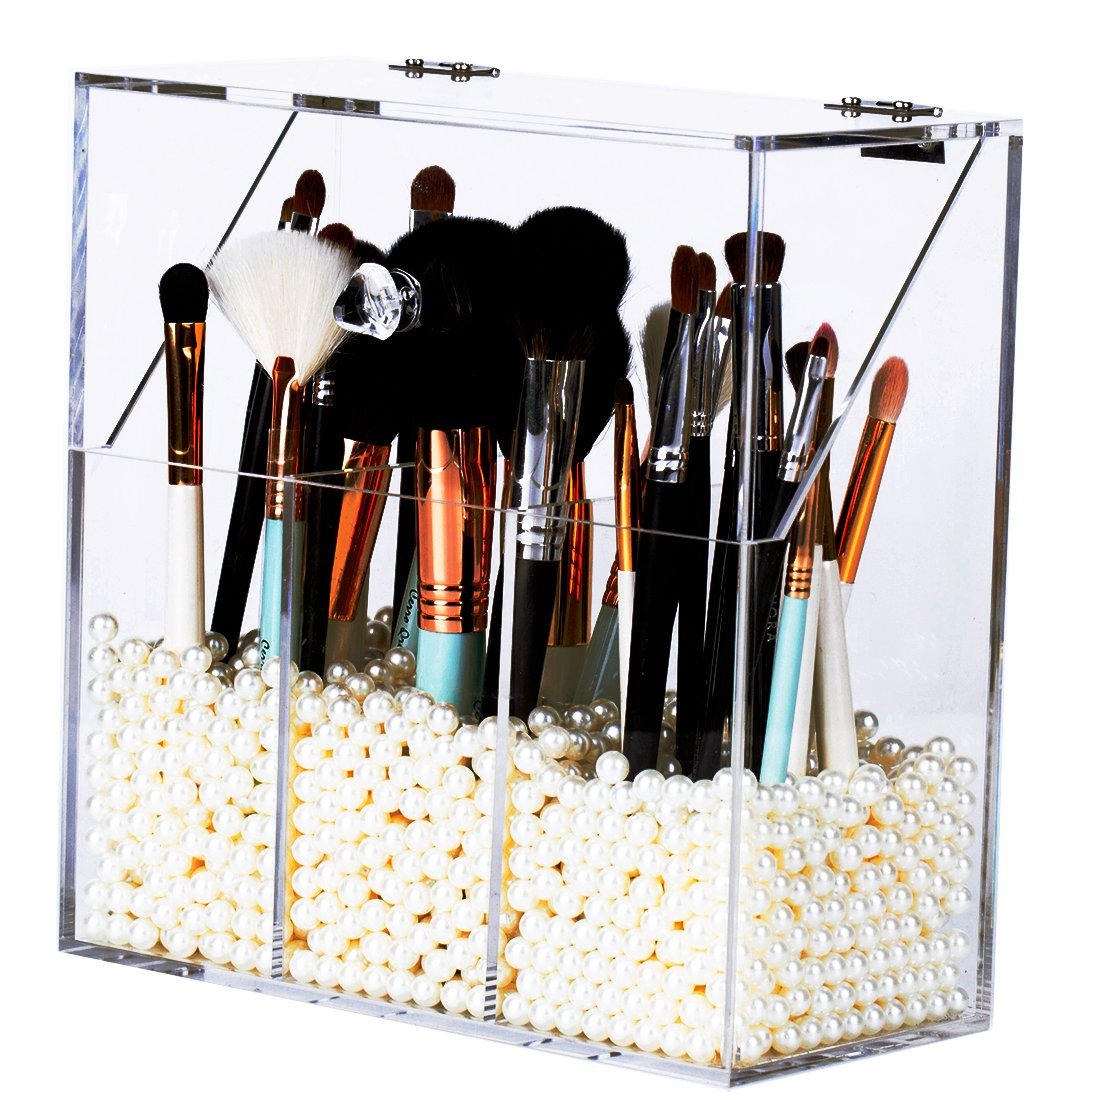 Newslly Clear Acrylic Makeup Organizer with 3 Brush Holder Compartment and Dustproof Lid, Cosmetic Brush Storage Box with White Pearls, for Bathroom Bedroom Vanity Countertop…